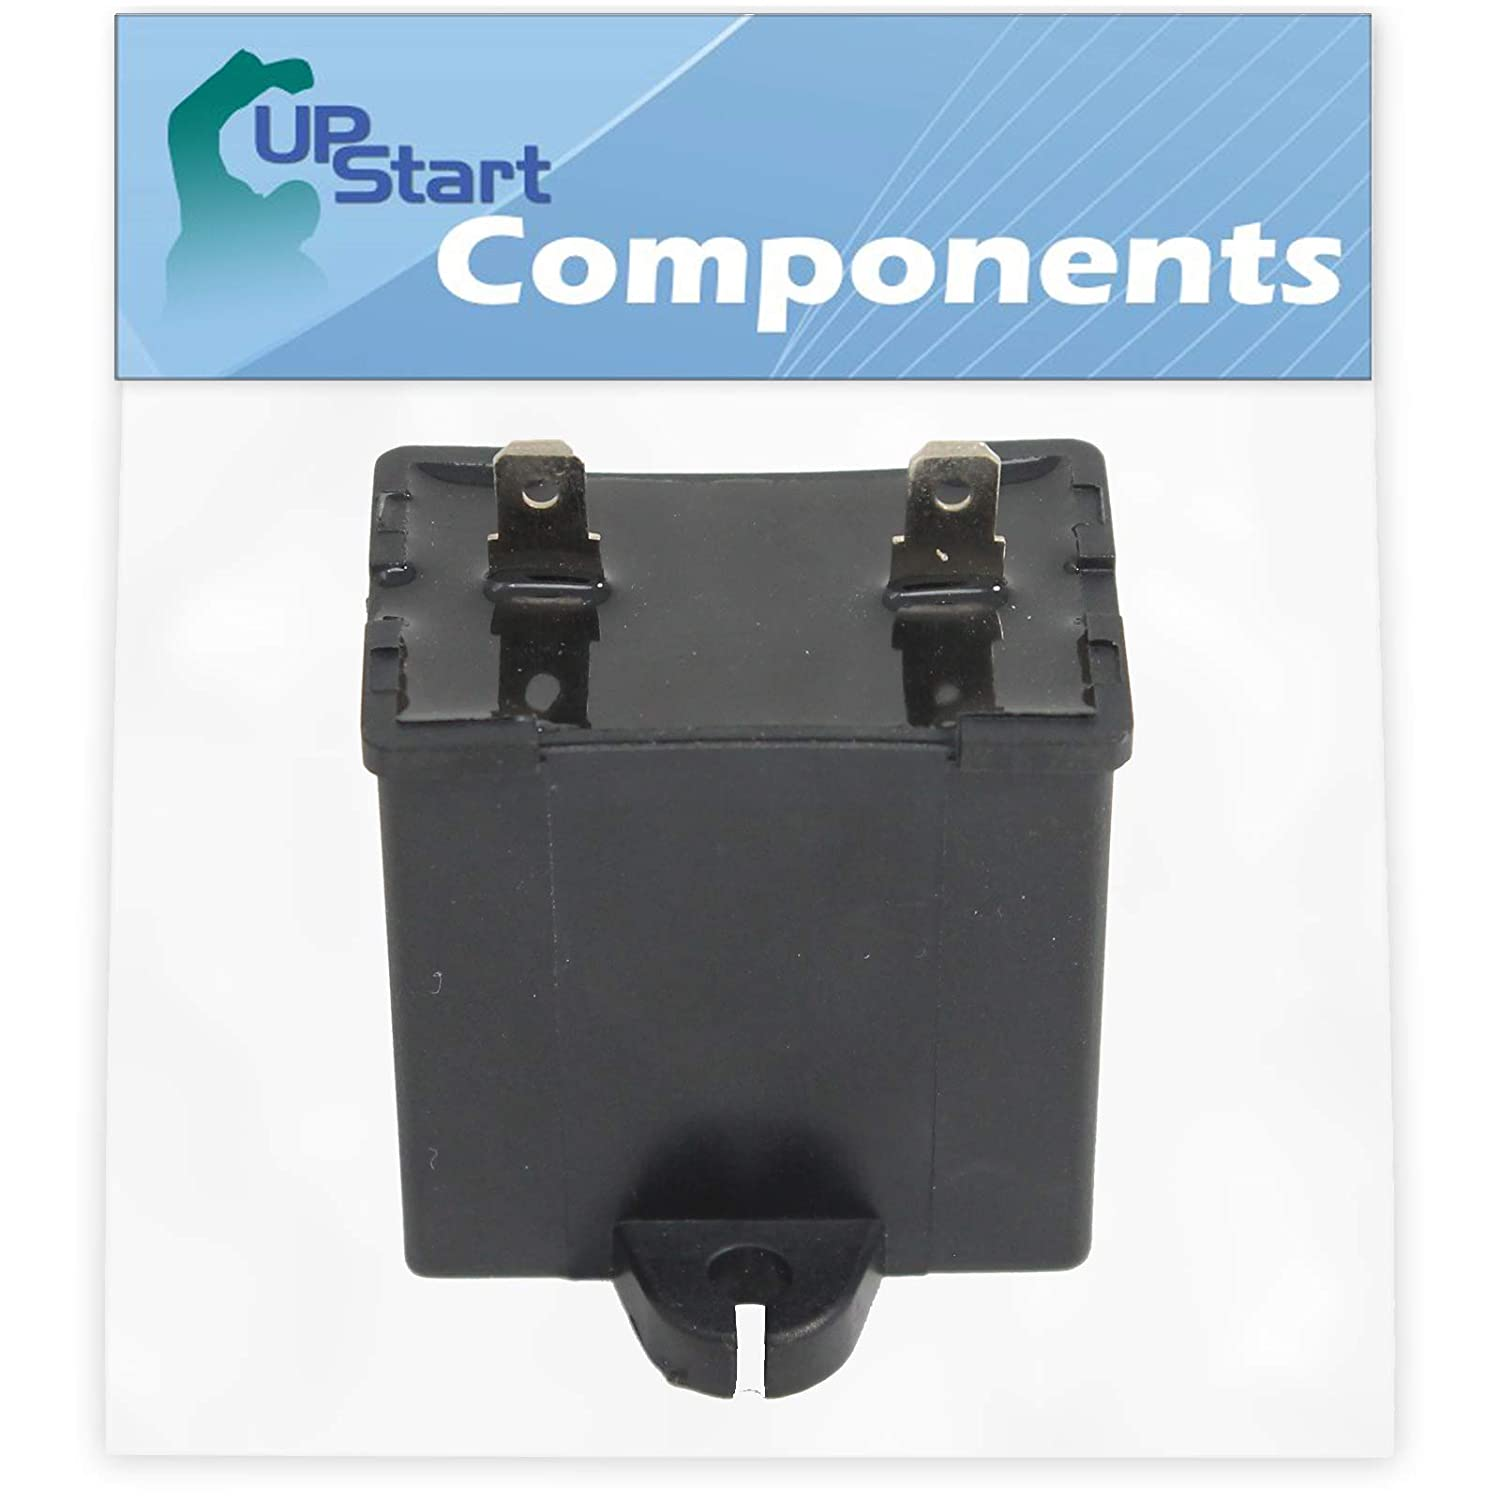 W10662129 Refrigerator and Freezer Compressor Run Capacitor Replacement for Amana TZ21RL (P1157601W L) Refrigerator - Compatible with 2169373 WPW10662129 Run Capacitor - UpStart Components Brand